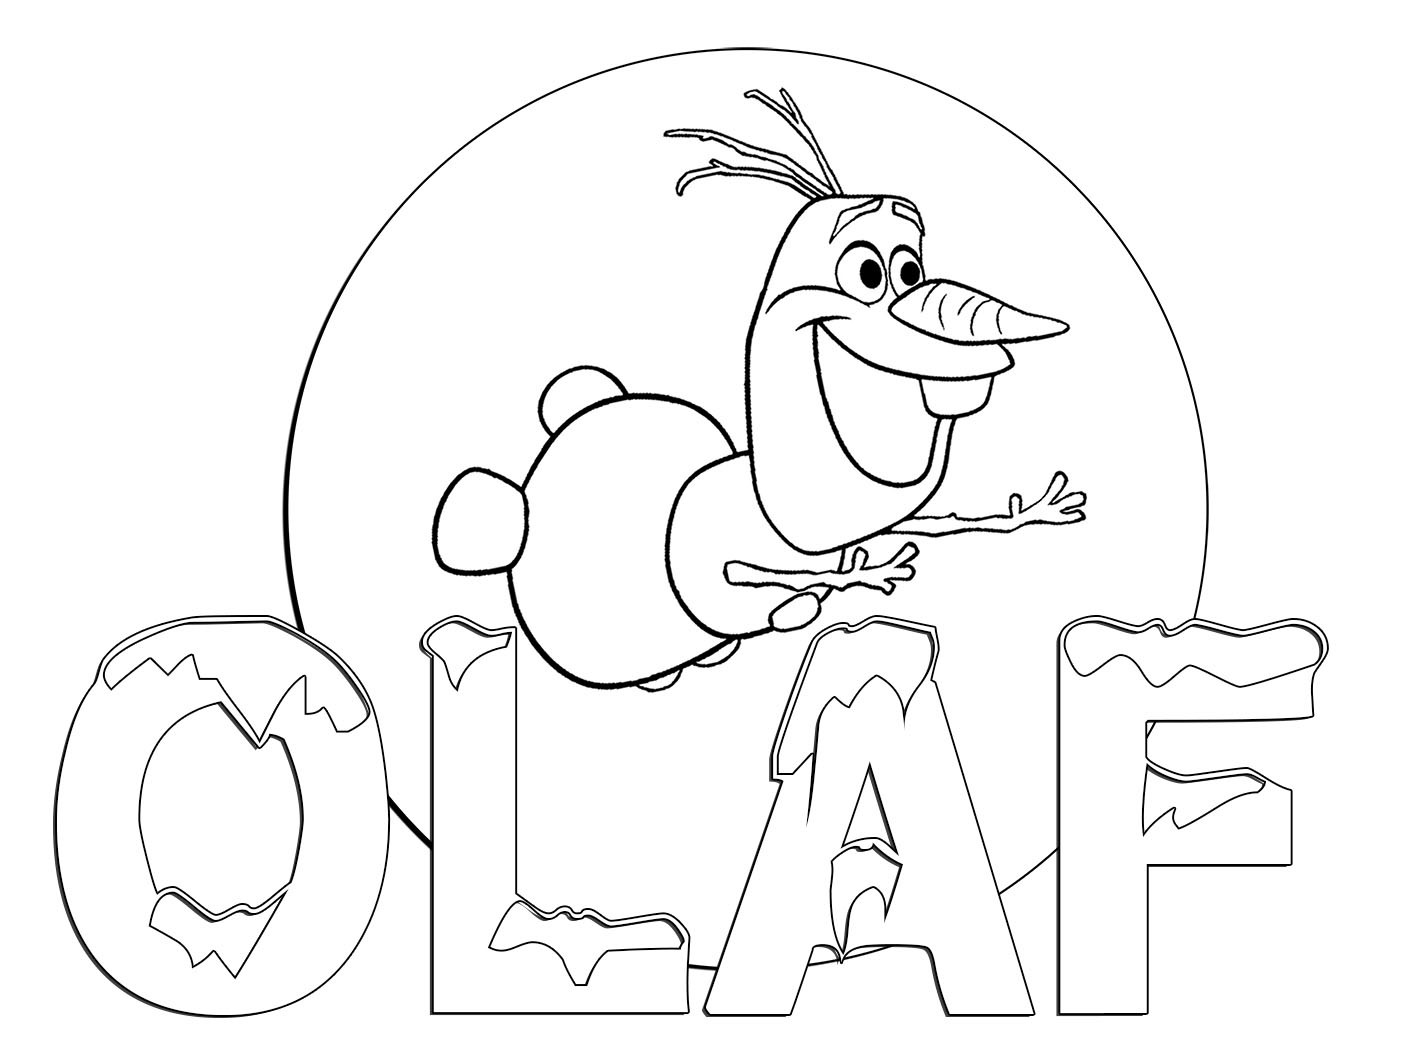 Free Printable Frozen Coloring Pages For Kids Best Frozen Coloring Pages Printable